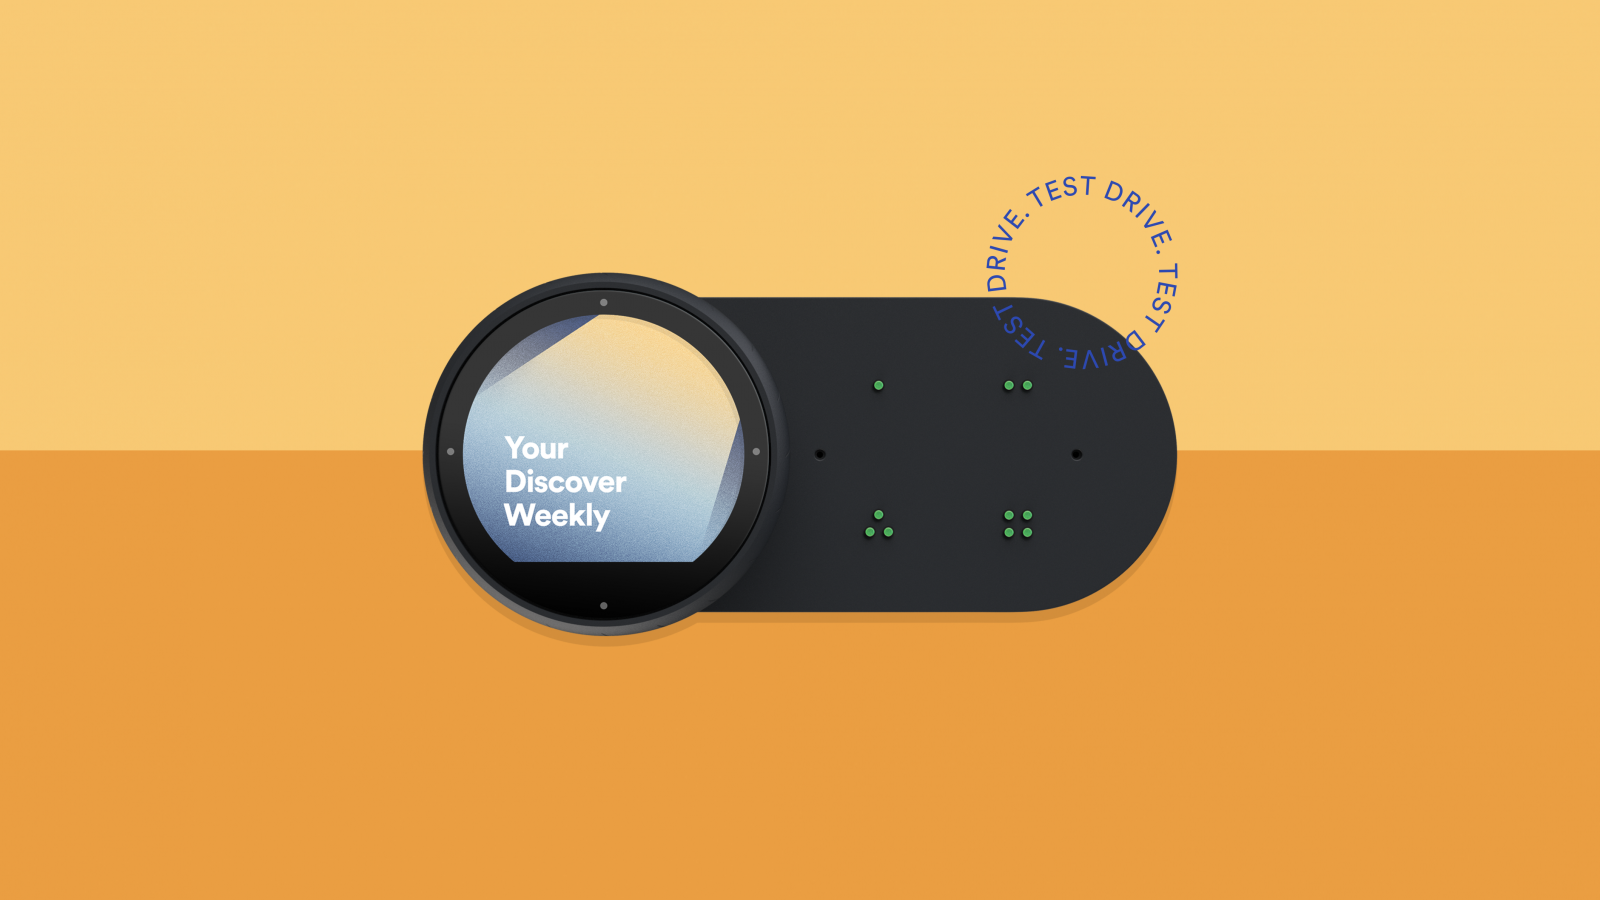 techcrunch.com - Brian Heater - Spotify is test driving a car hardware thing called 'Car Thing'